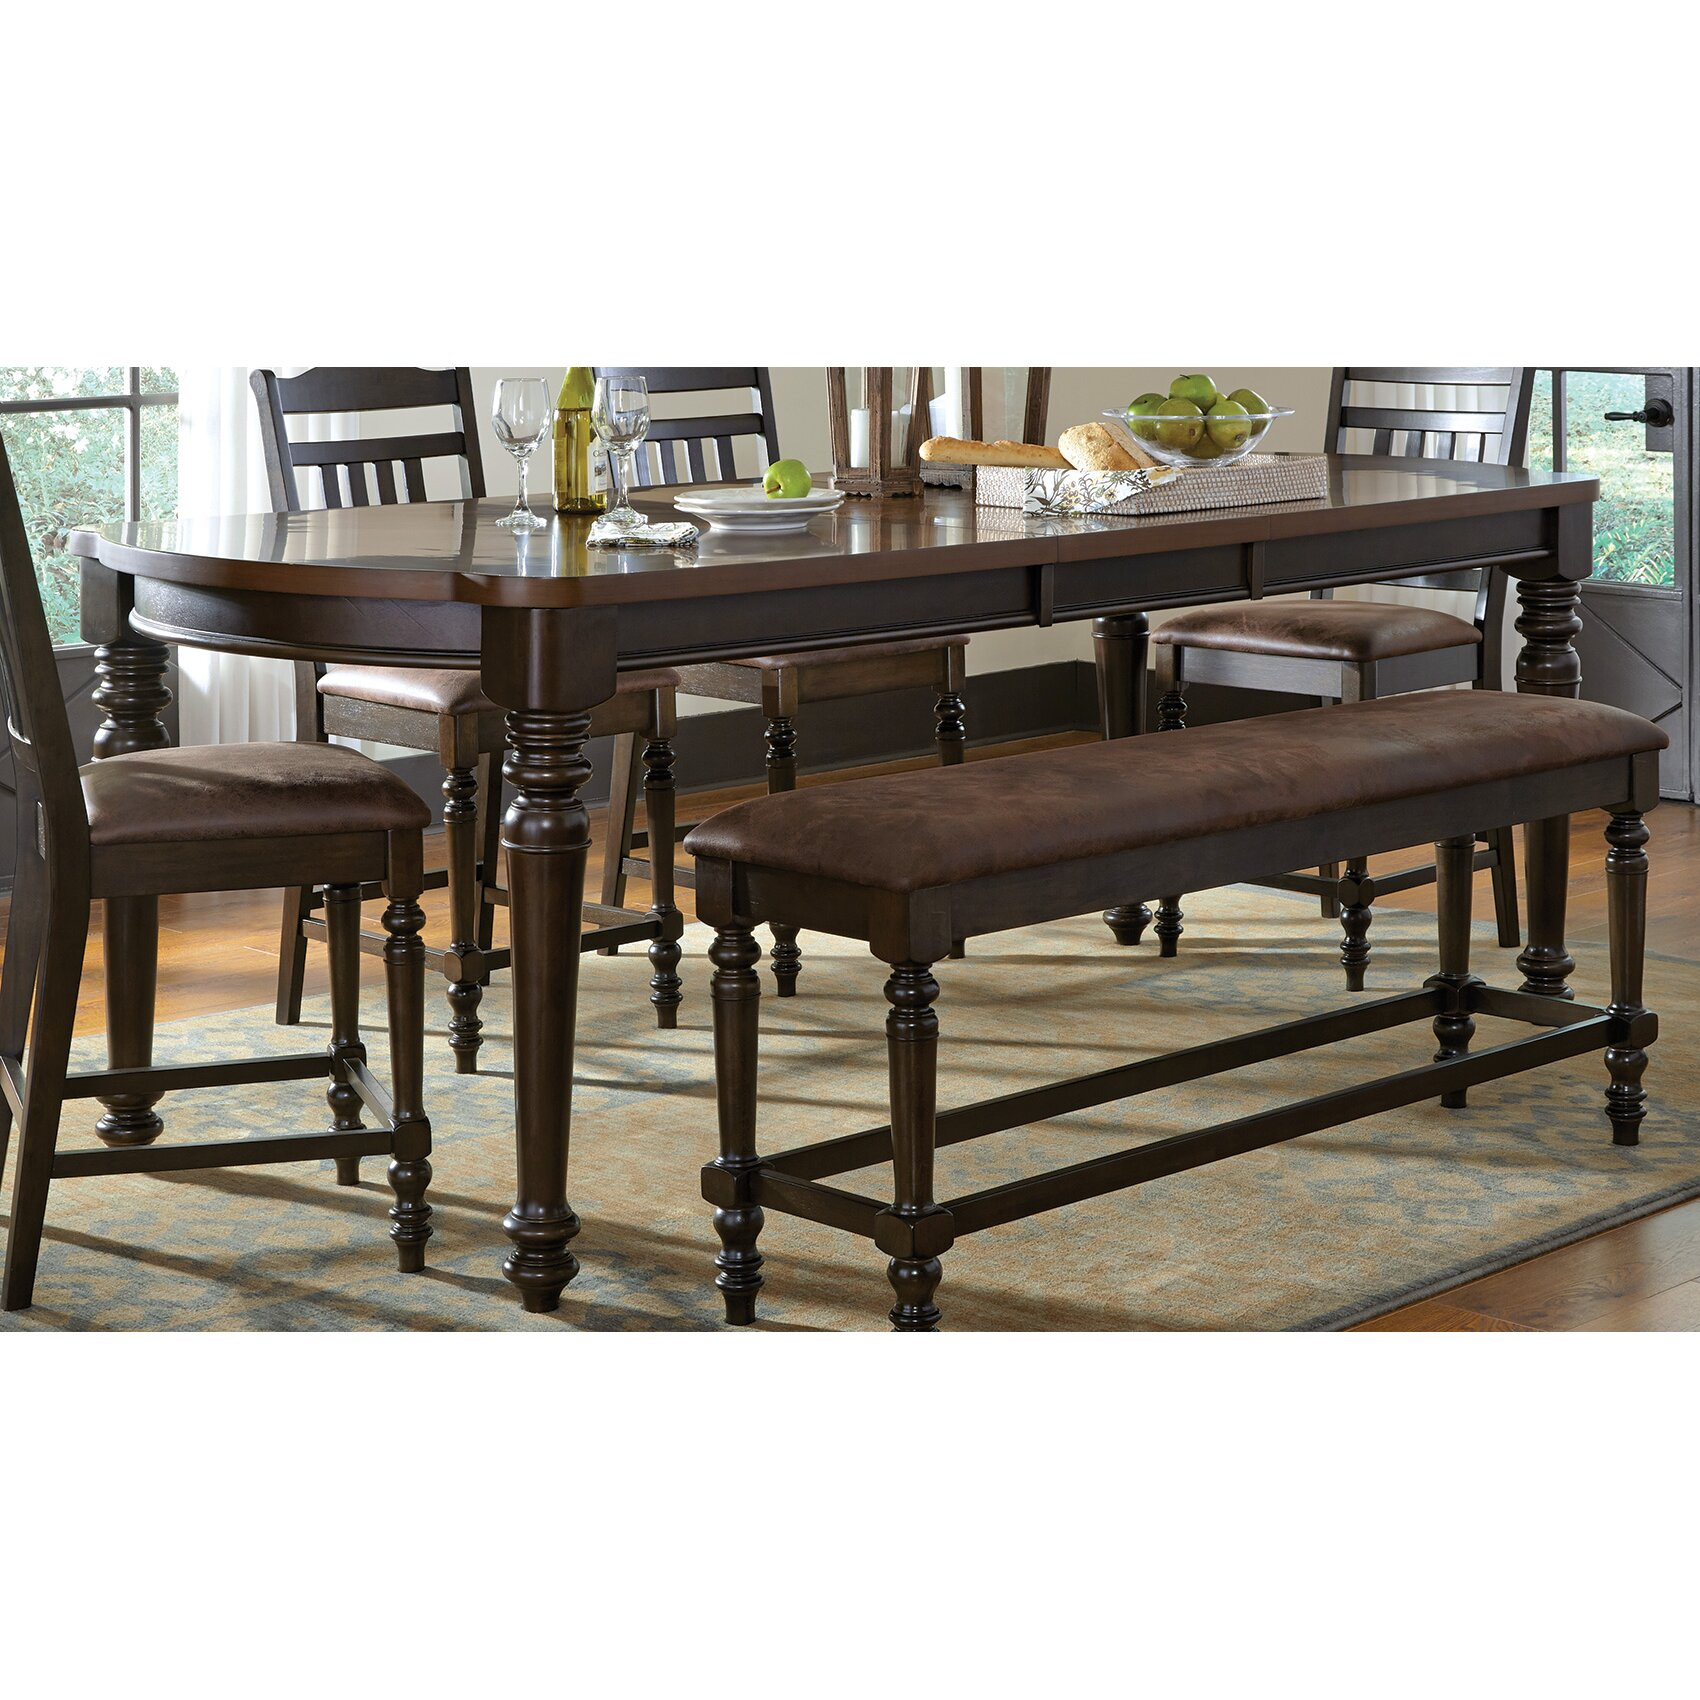 Wildon home counter height dining table wayfair for Wildon home dining